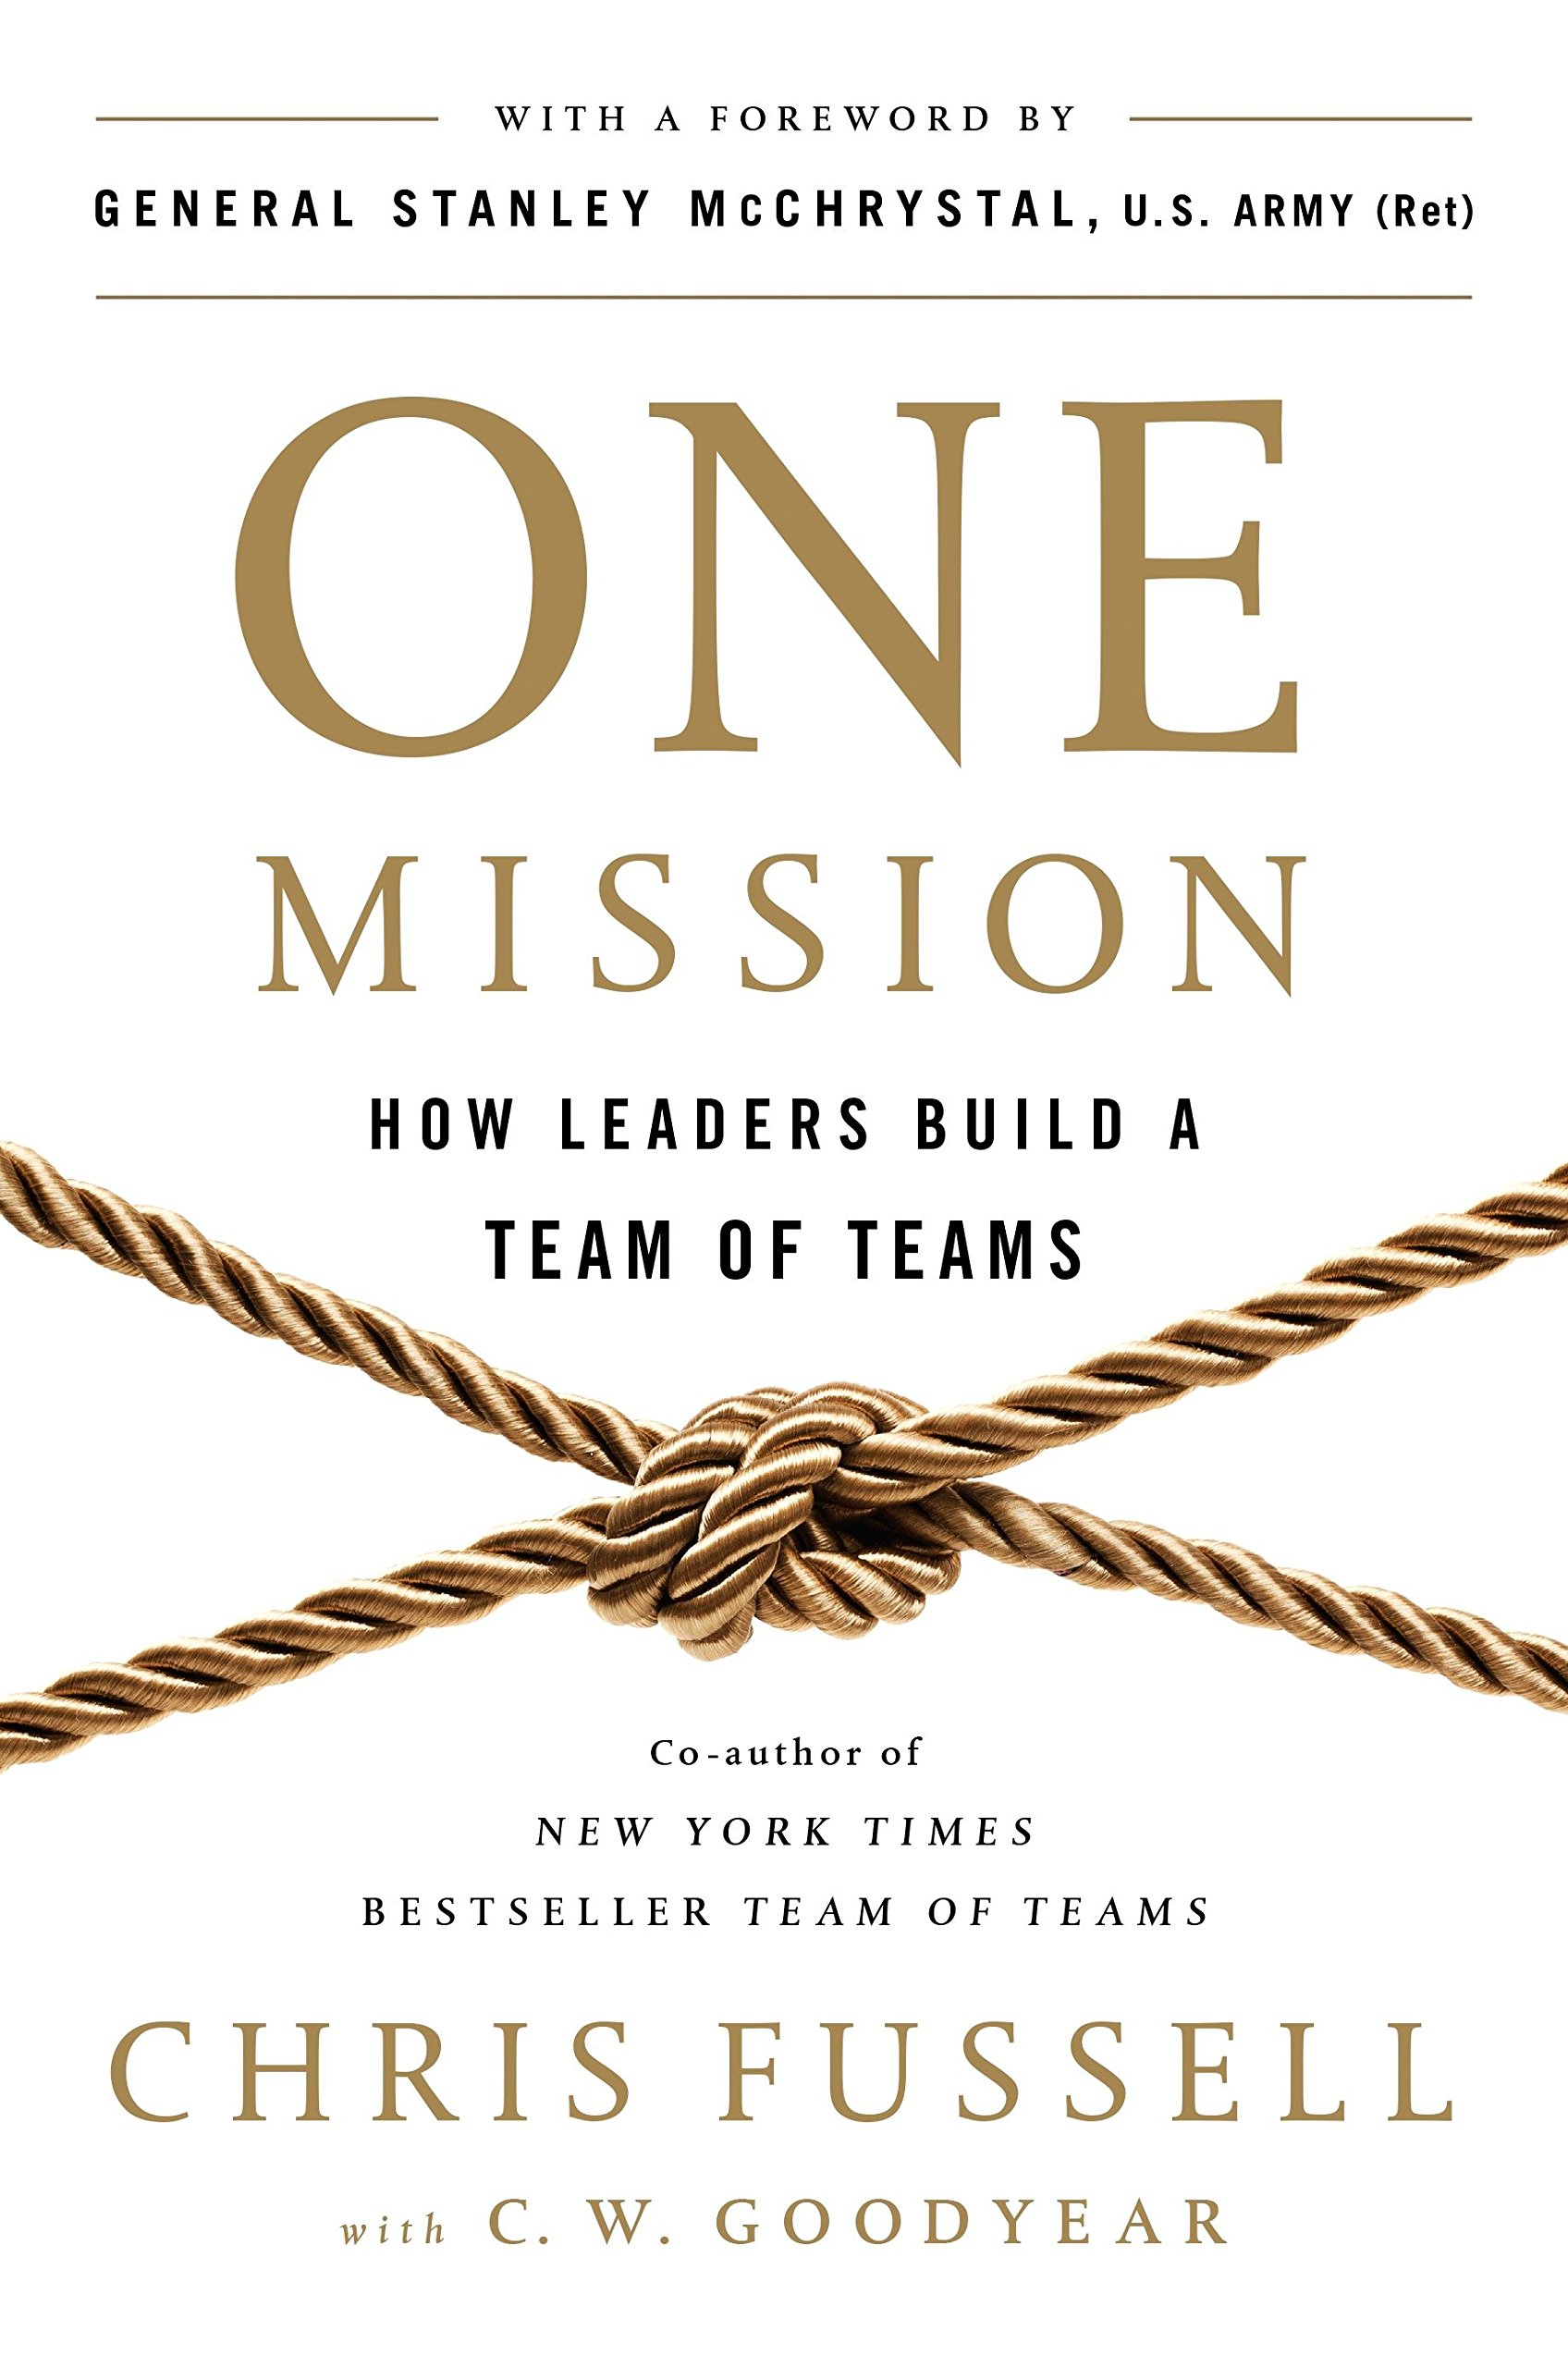 One Mission: How Leaders Build a Team of Teams: Chris Fussell, C. W.  Goodyear, General Stanley McChrystal: 9780735211353: Amazon.com: Books